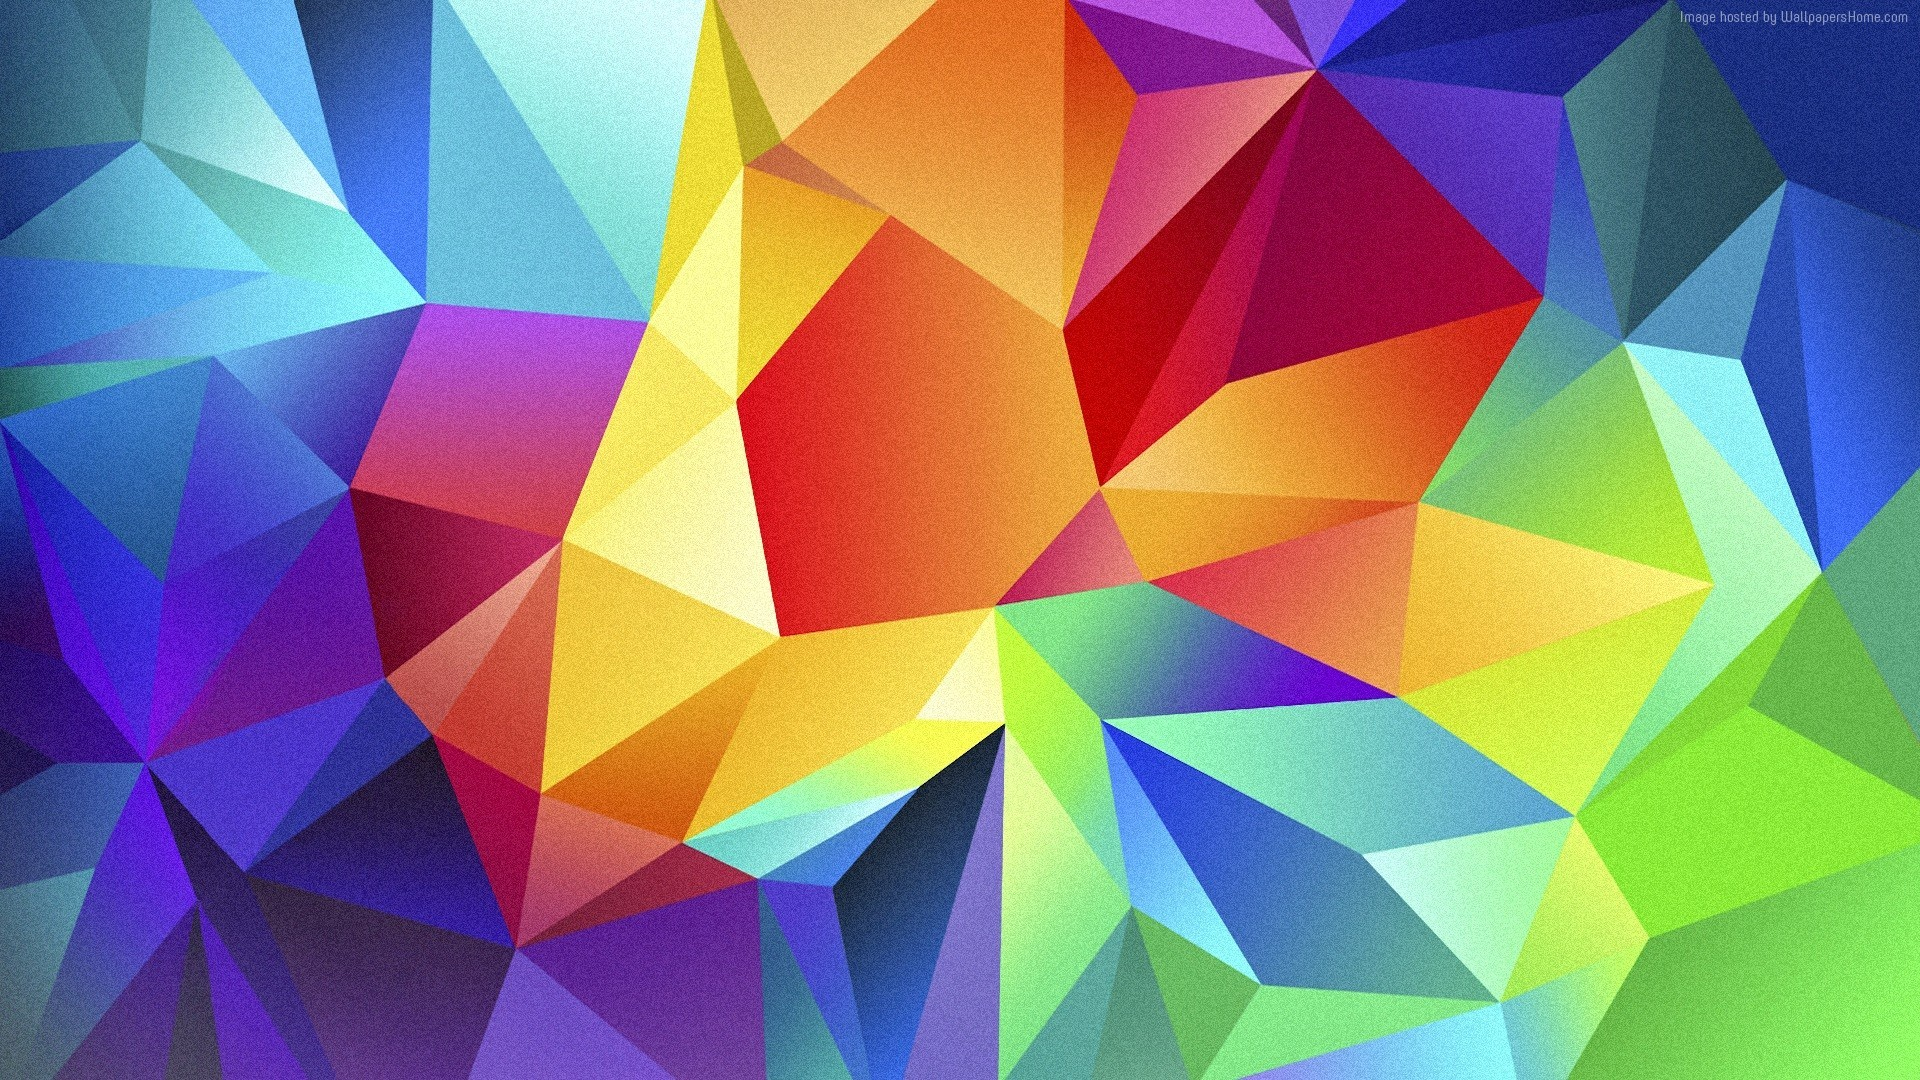 Wallpaper polygon, 4k, HD wallpaper, android, triangle, background, orange,  red, blue, pattern, OS #3522. Bring some HD wallpapers into your life